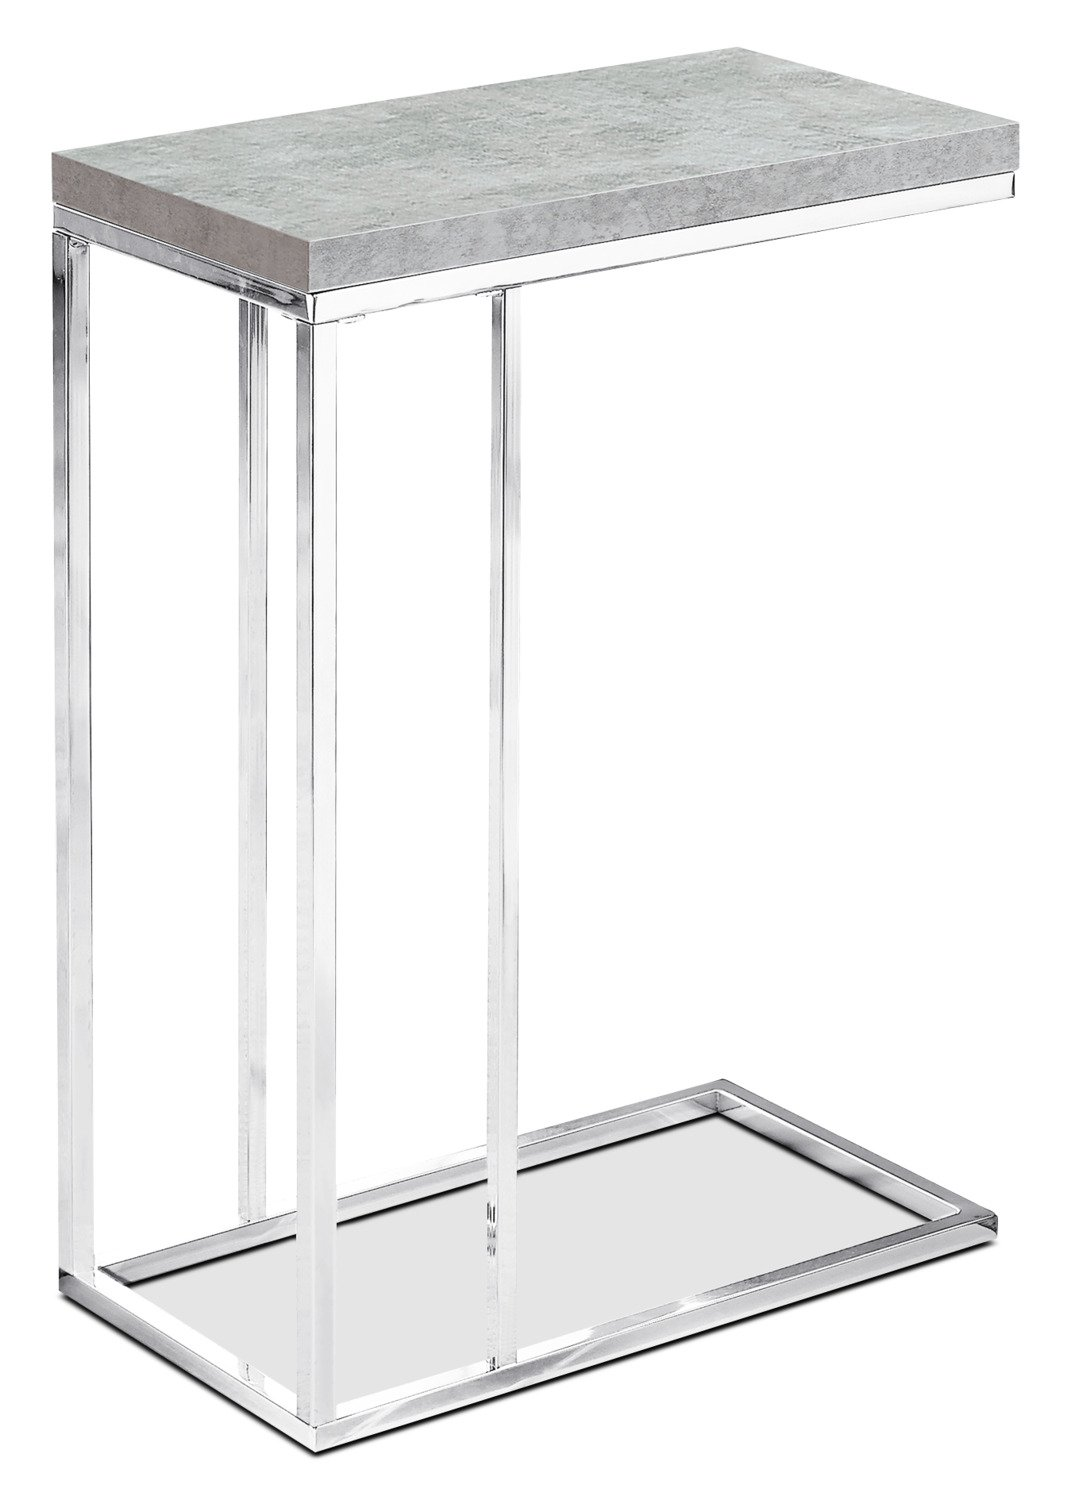 banda accent table the brick tables edmonton tabletable appoint plain lamp console with doors square concrete ultra modern lamps live edge top wooden bedside cabinets blue